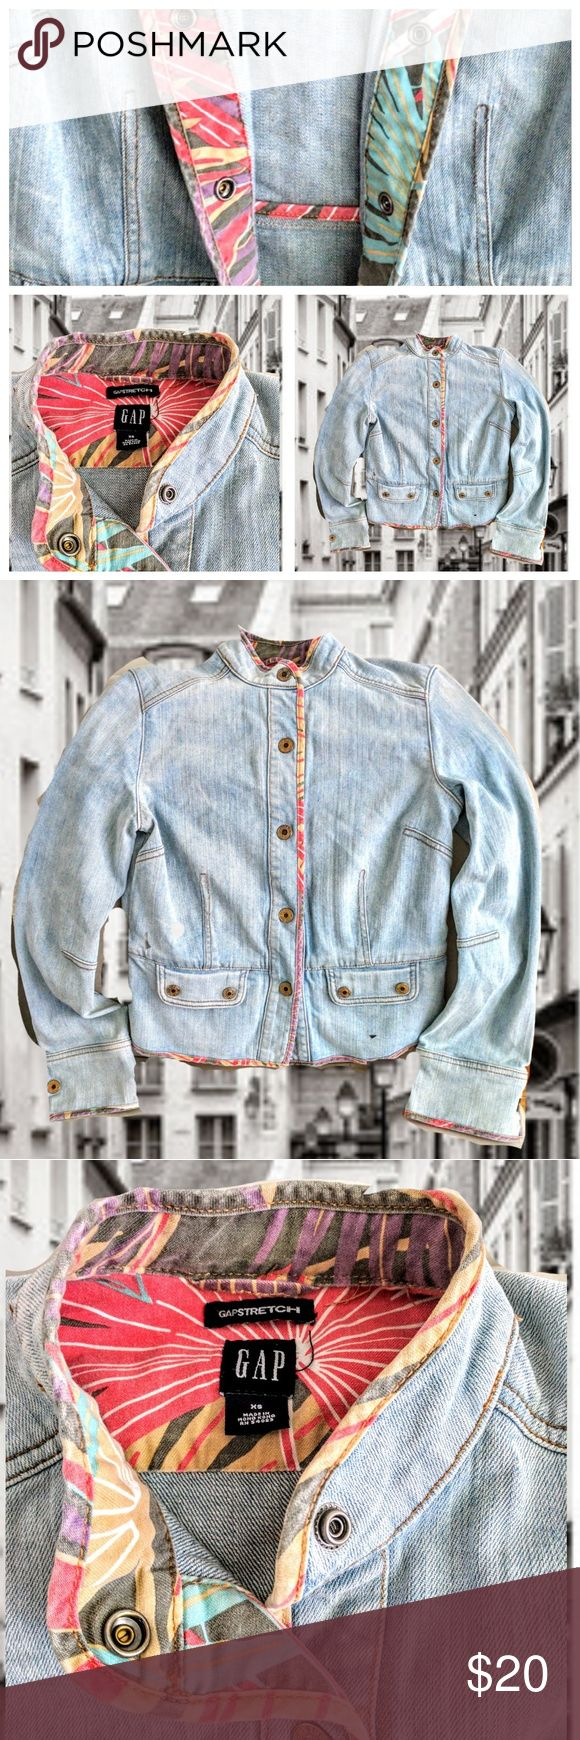 GAP vintage denim Mandarin collar contrast tropical print collar & cuffs stonewashed cotton denim jacket from the gap. This jacket is from the 90's, and is in great condition. Sz XS. Cut larger so would definitely work for a small as well. GAP Jackets & Coats Jean Jackets